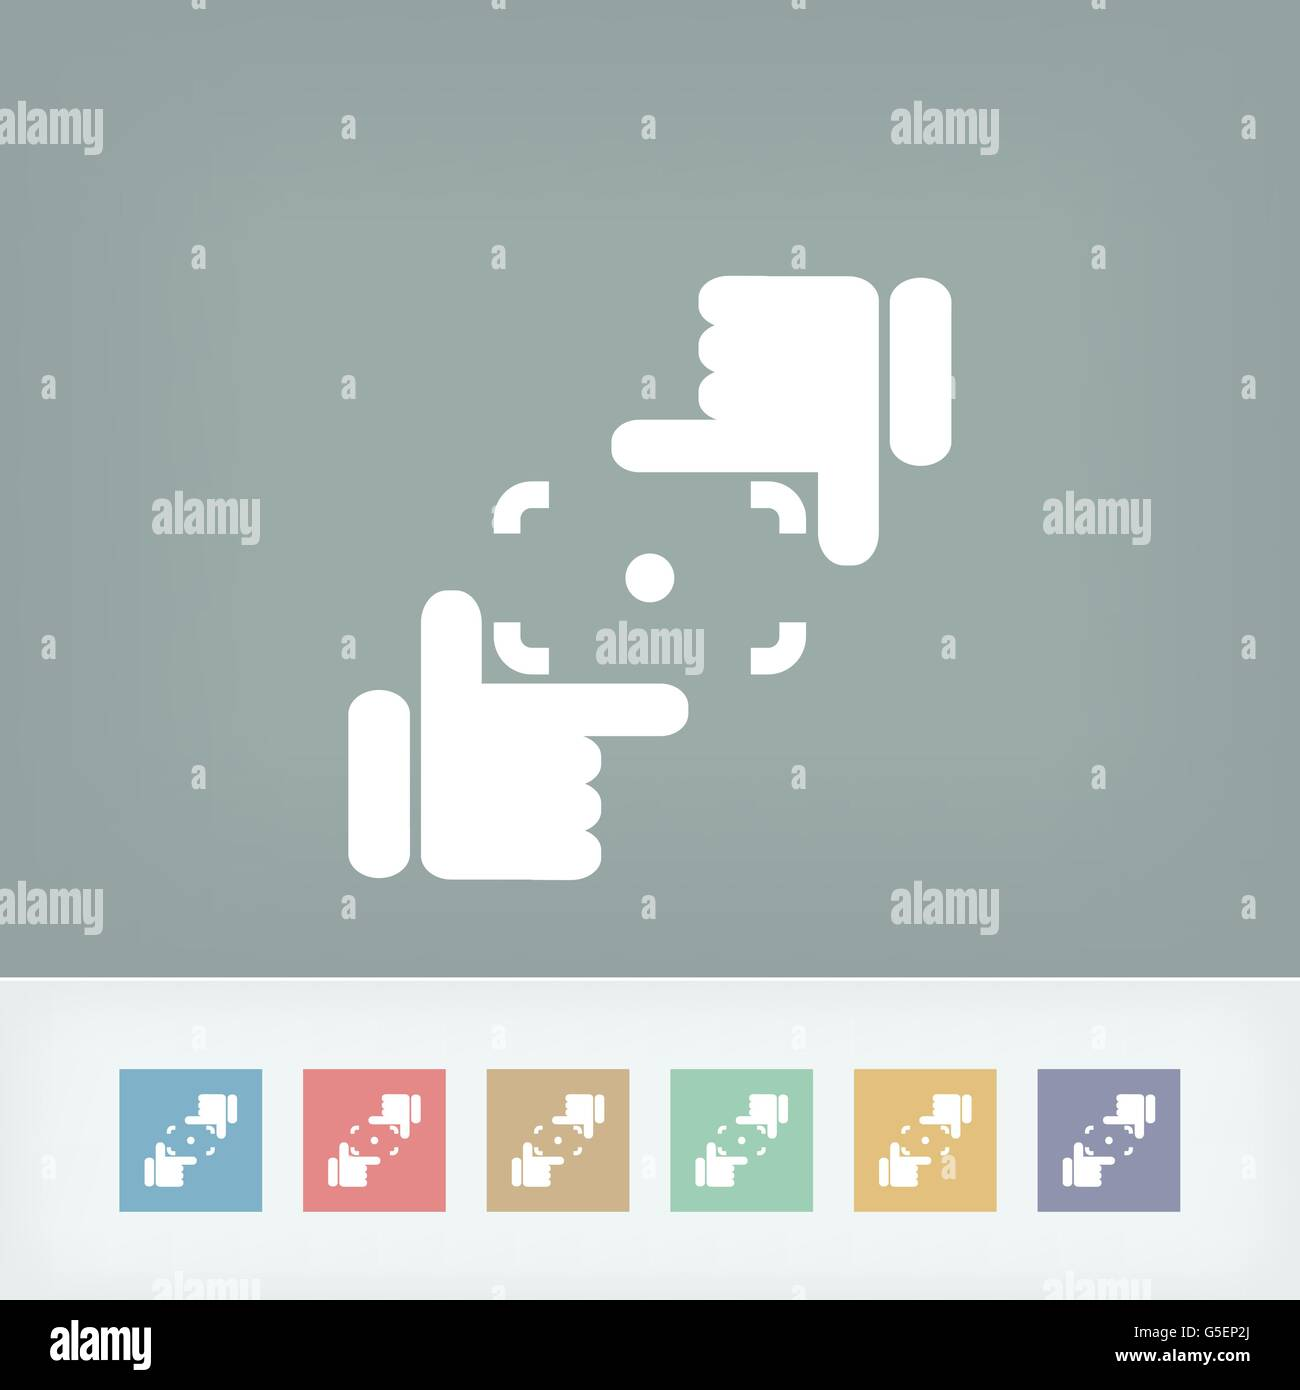 Camera lens simulation icon - Stock Vector